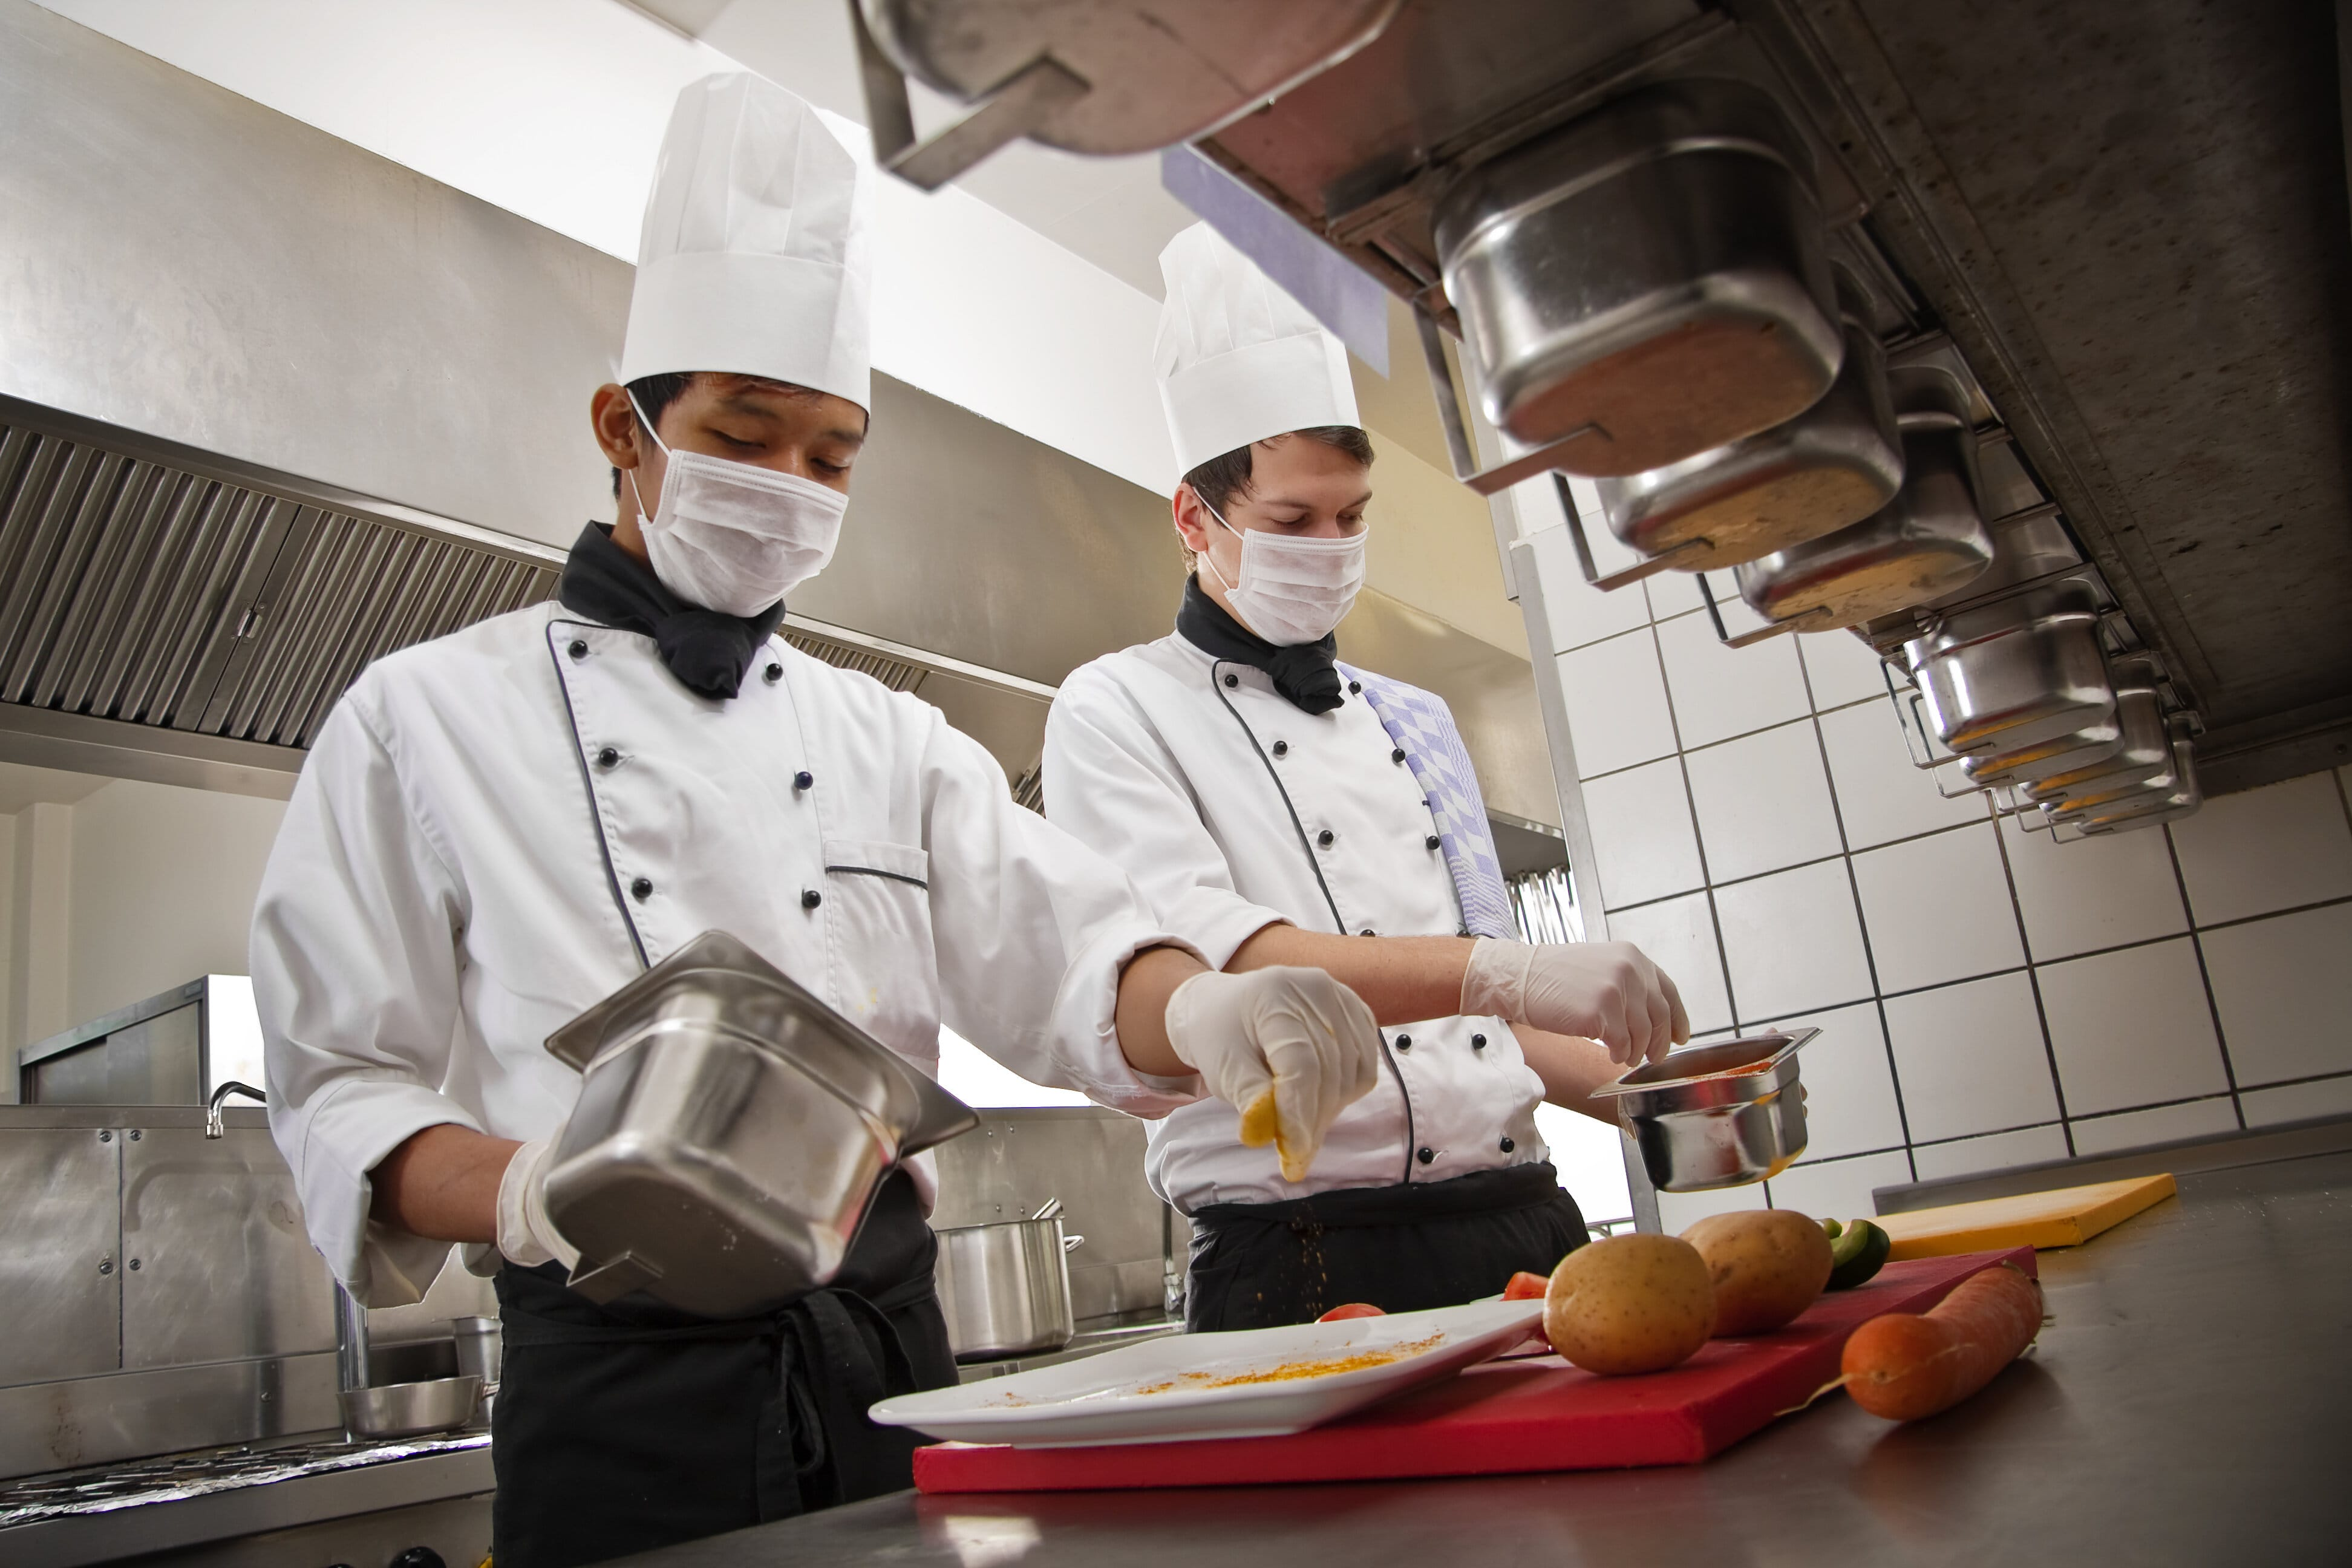 Two chefs preparing food wearing masks